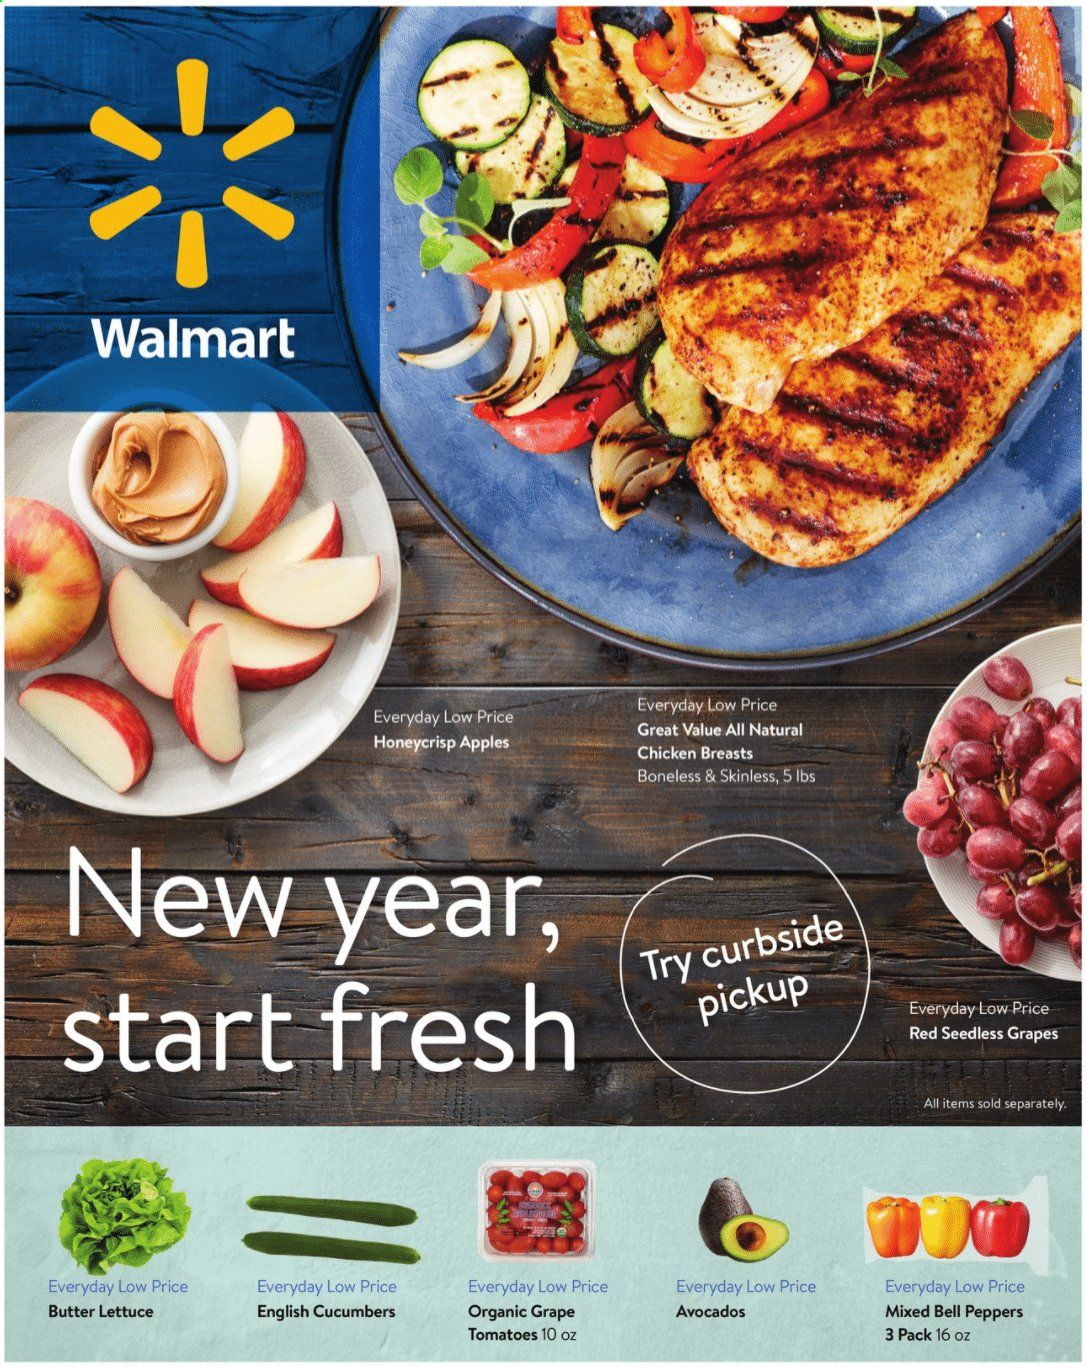 Walmart Flyer - 12.30.2020 - 01.26.2021 - Sales products - bell peppers, butter lettuce, cucumbers, tomatoes, lettuce, peppers, apples, avocado, grapes, seedless grapes, chicken, chicken breast. Page 1.